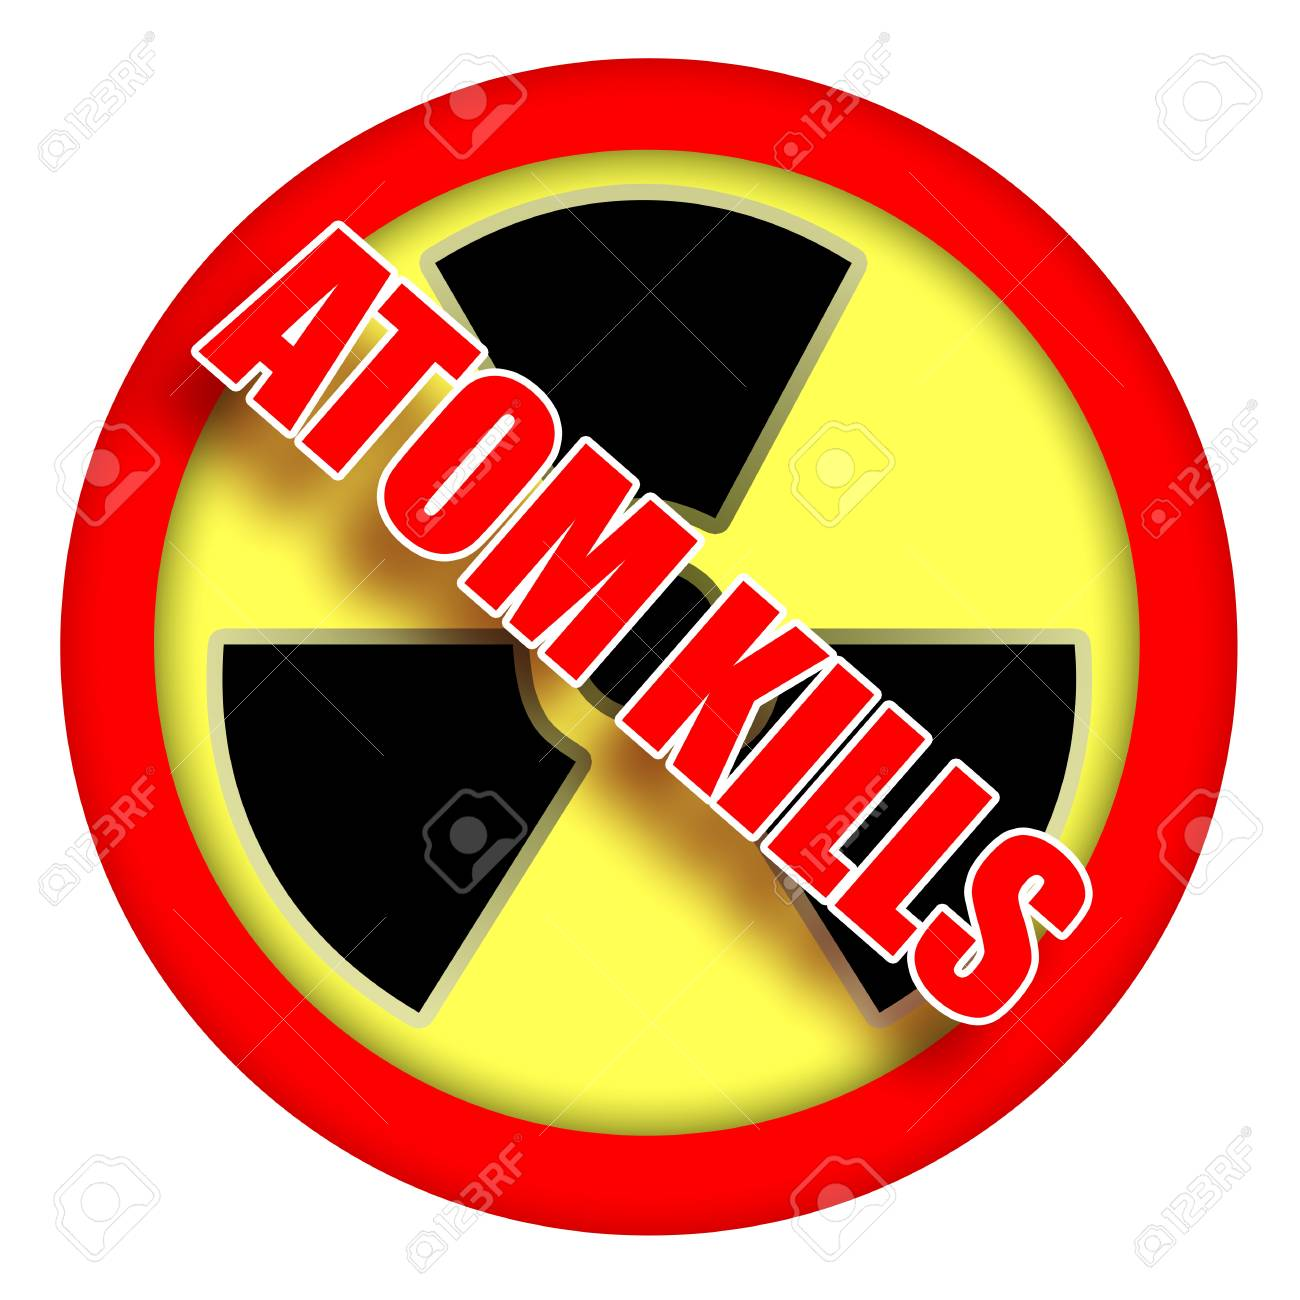 Atom kills, nuclear protest sign illustration isolated over white background Stock Illustration - 9369958